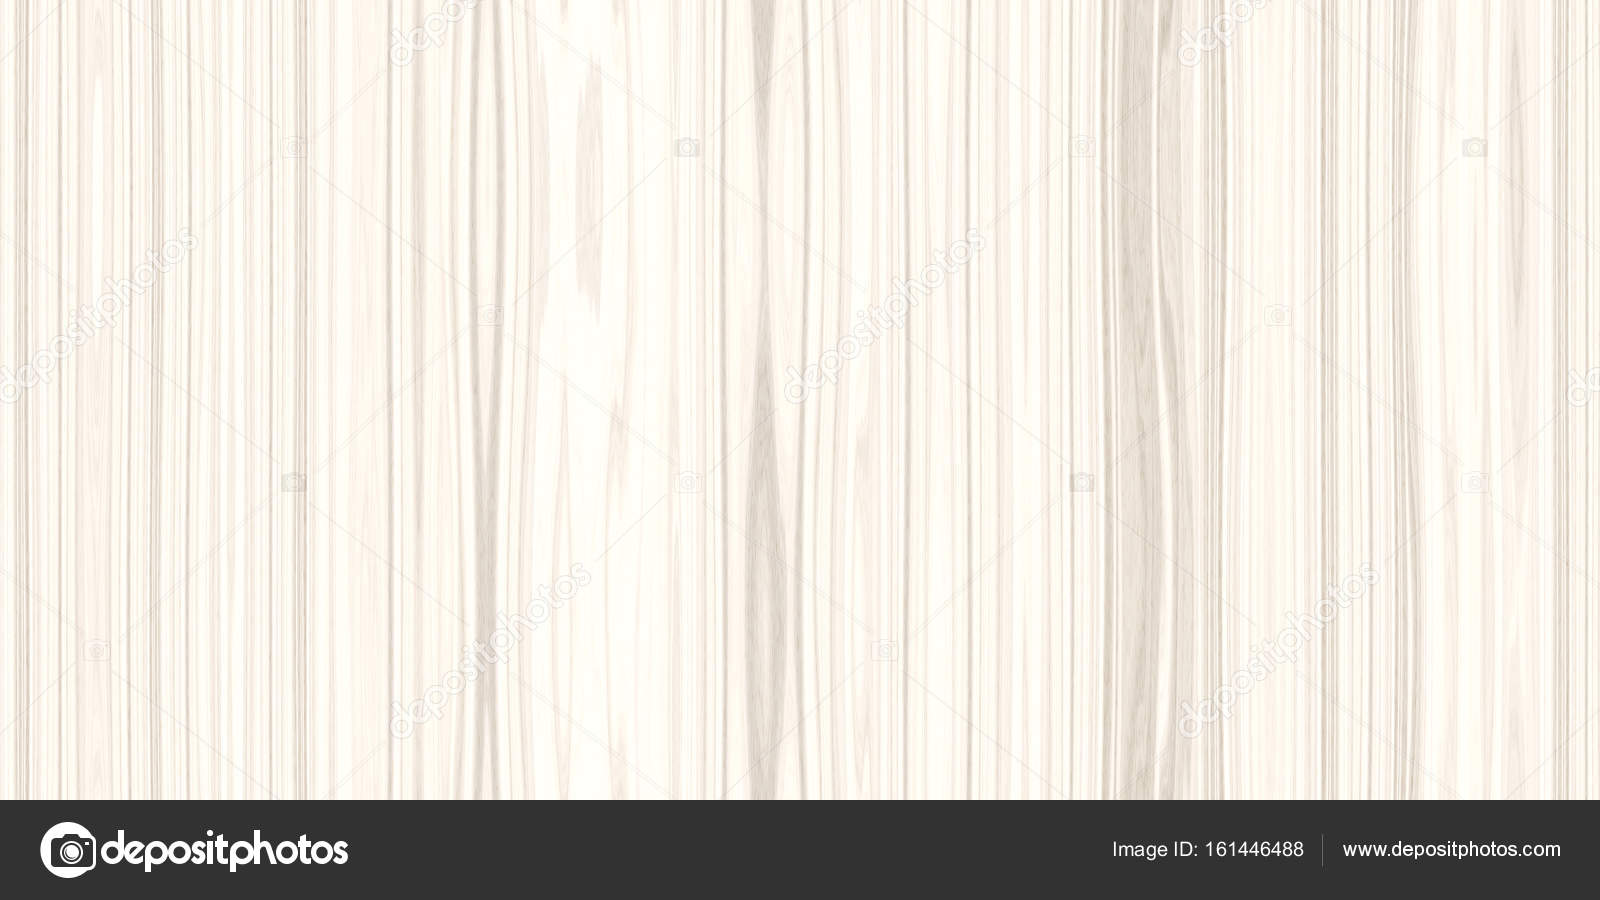 Seamless White Wood Texture Vertical Across Tree Fibers Directi